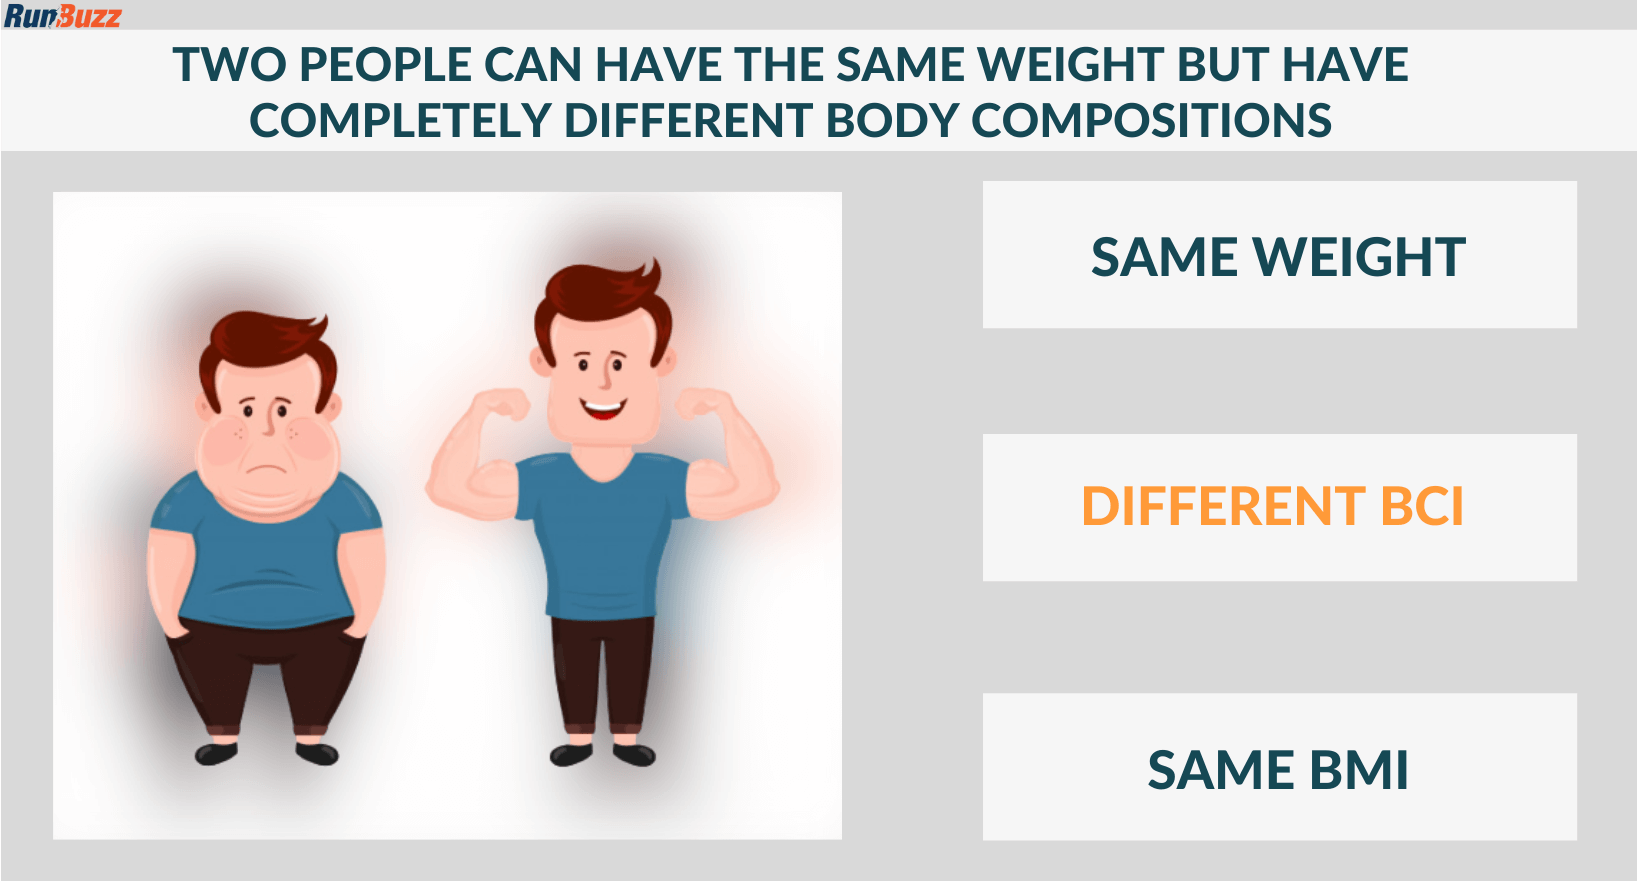 Weight-can-be-the-same-but-body-composition-different